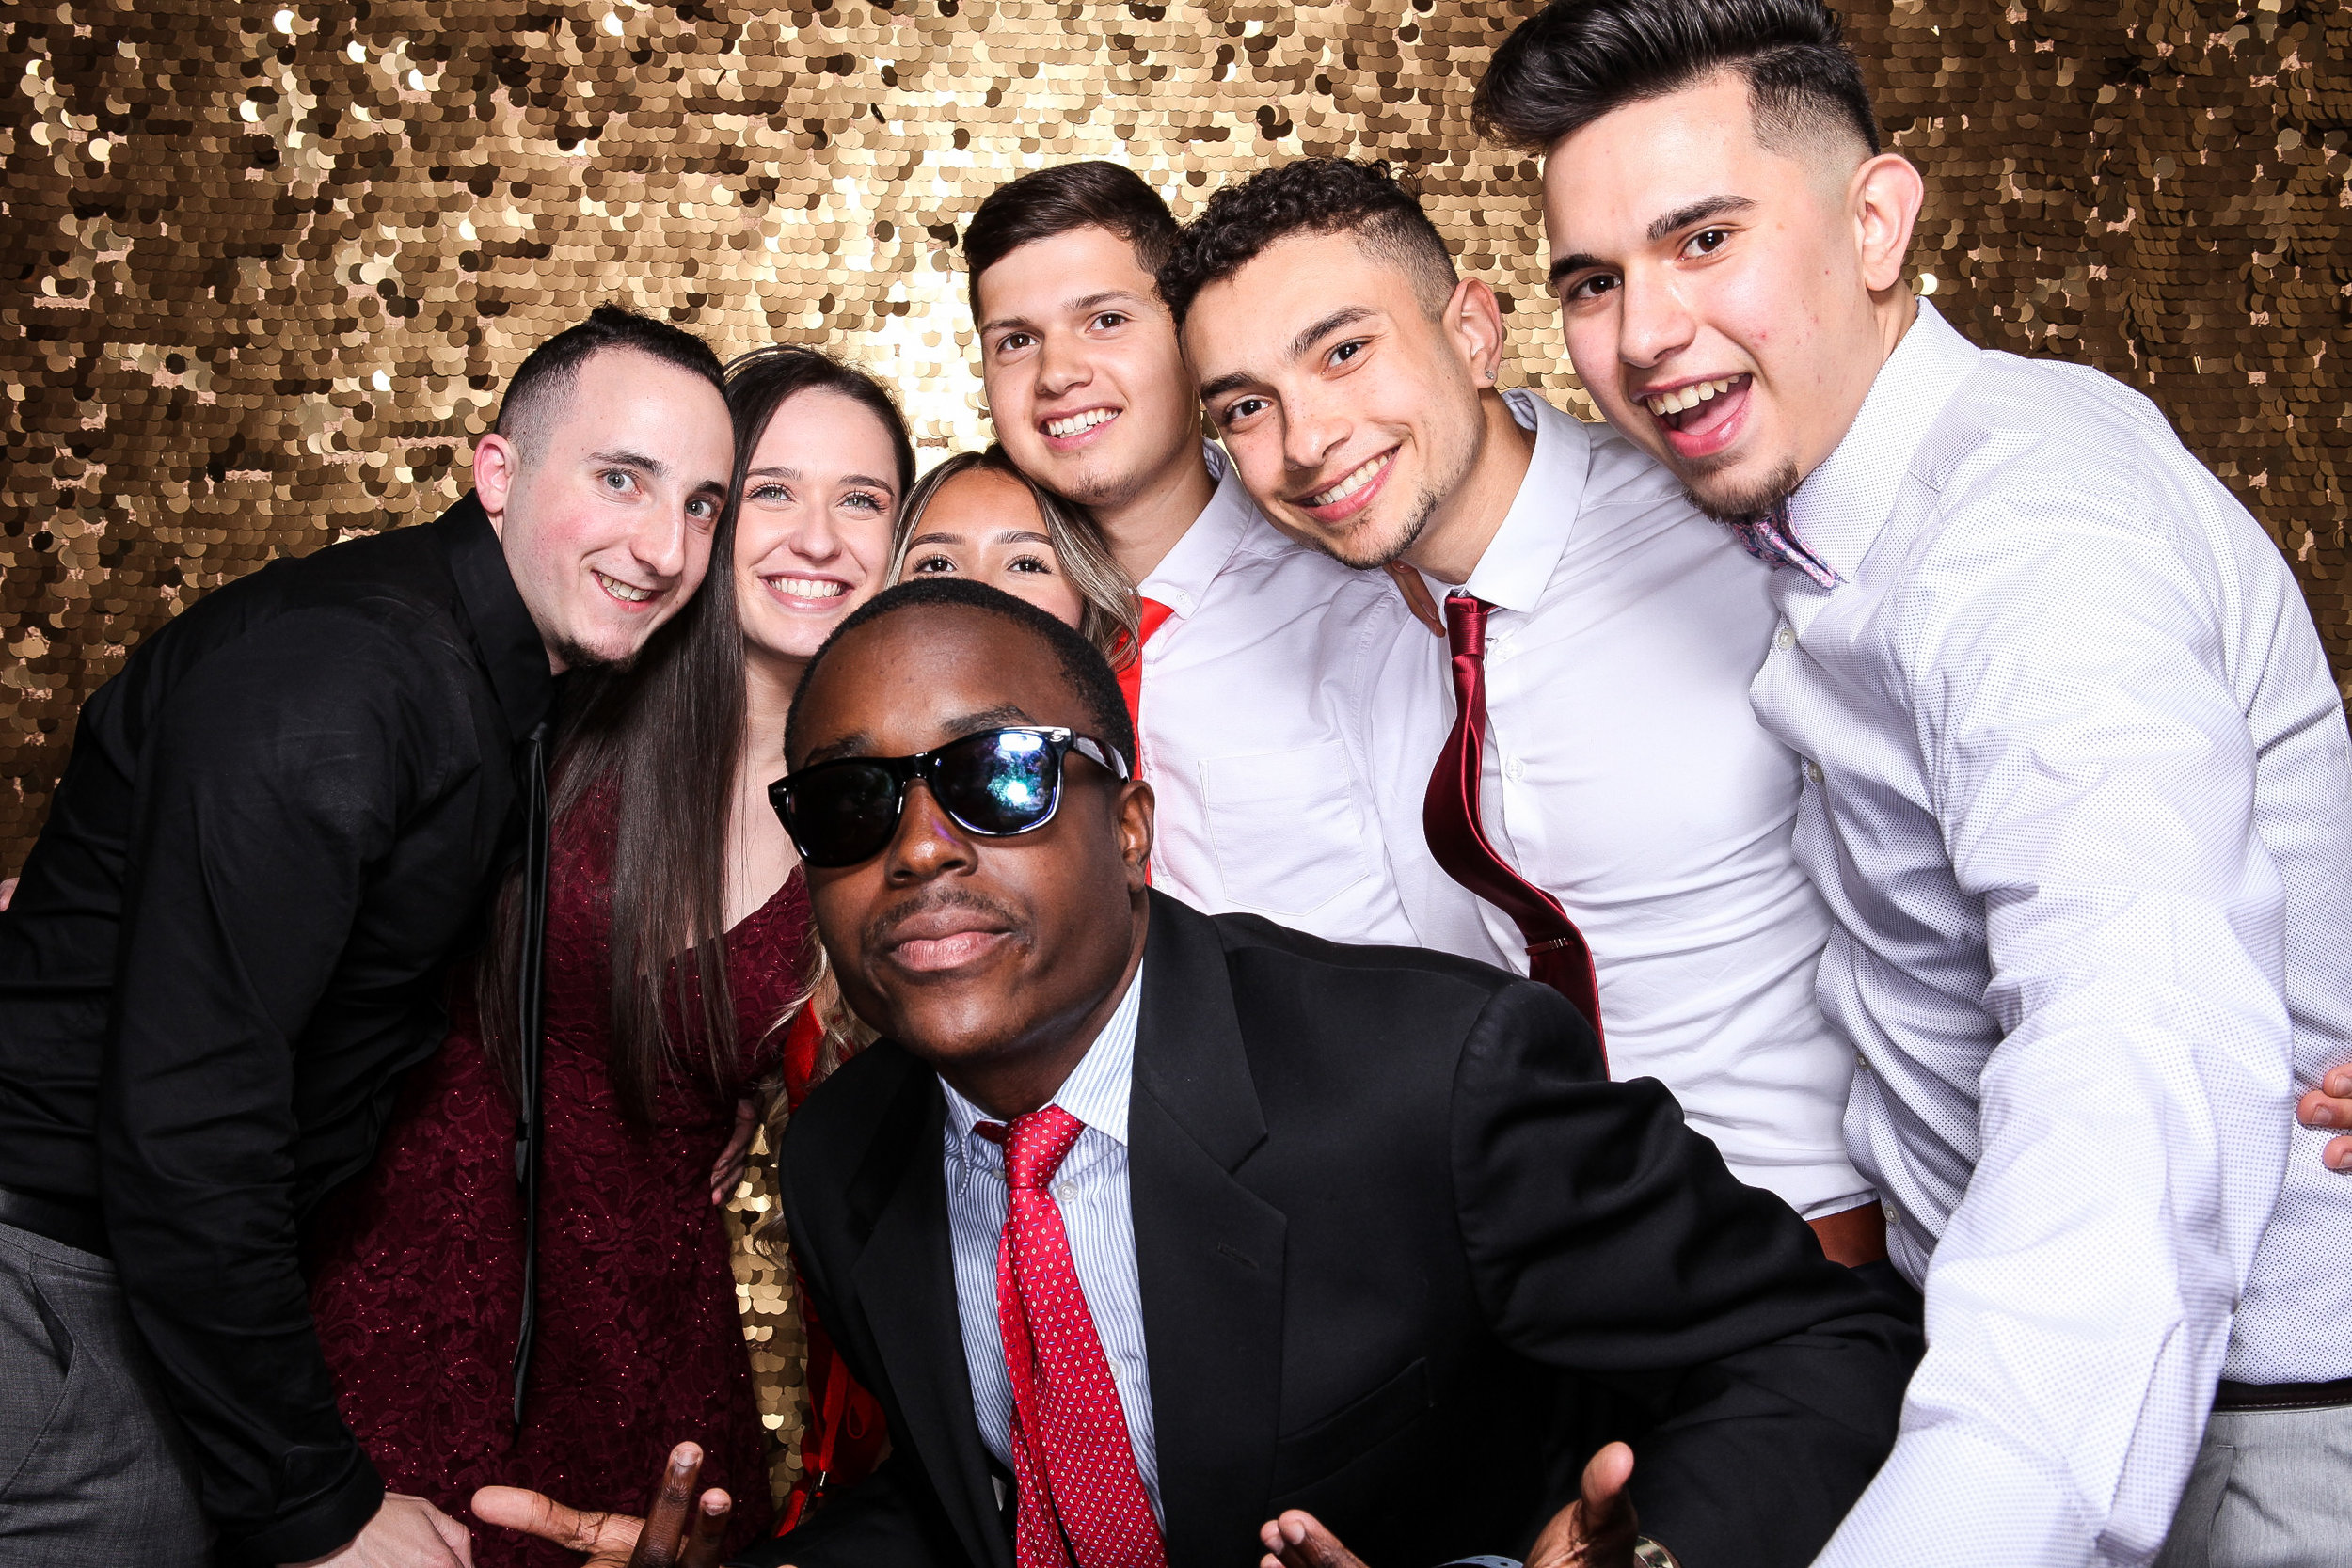 20190503_Adelphi_Senior_Formal-105.jpg